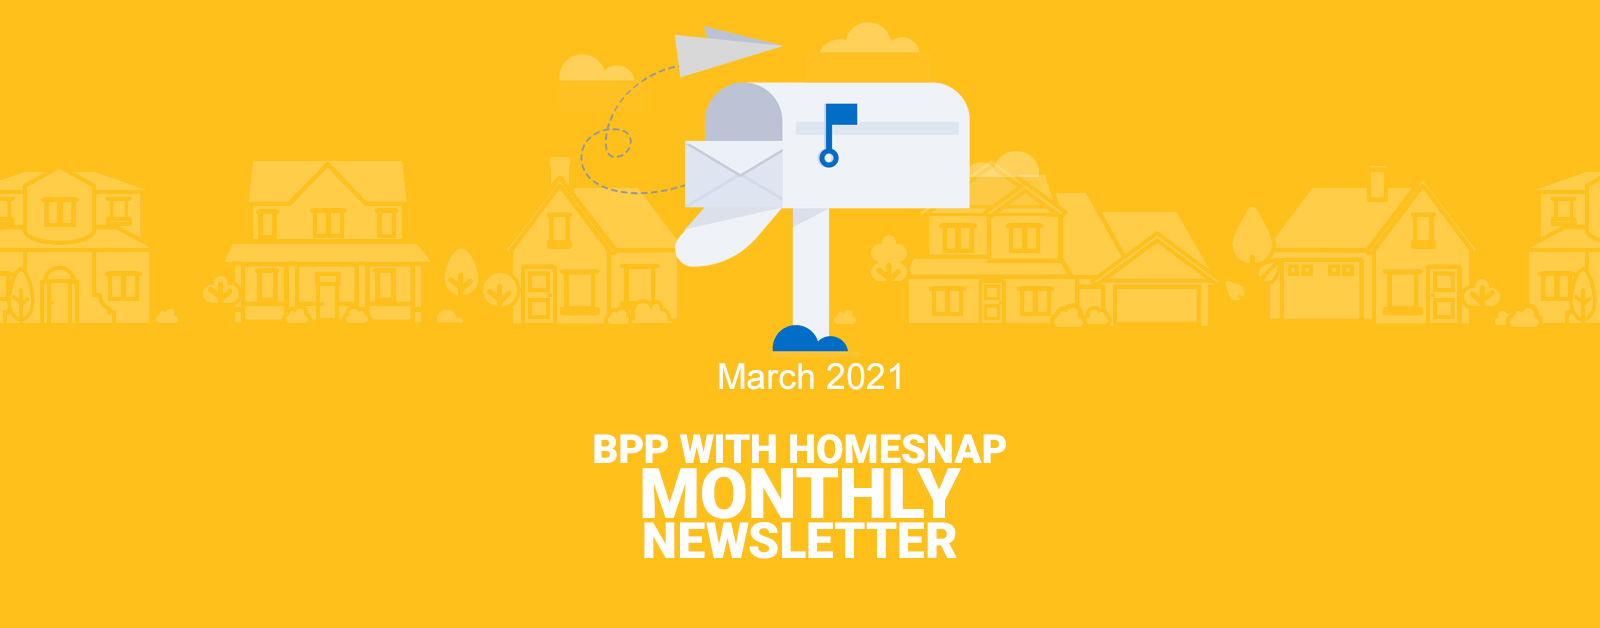 March 2021 BPP Newsletter